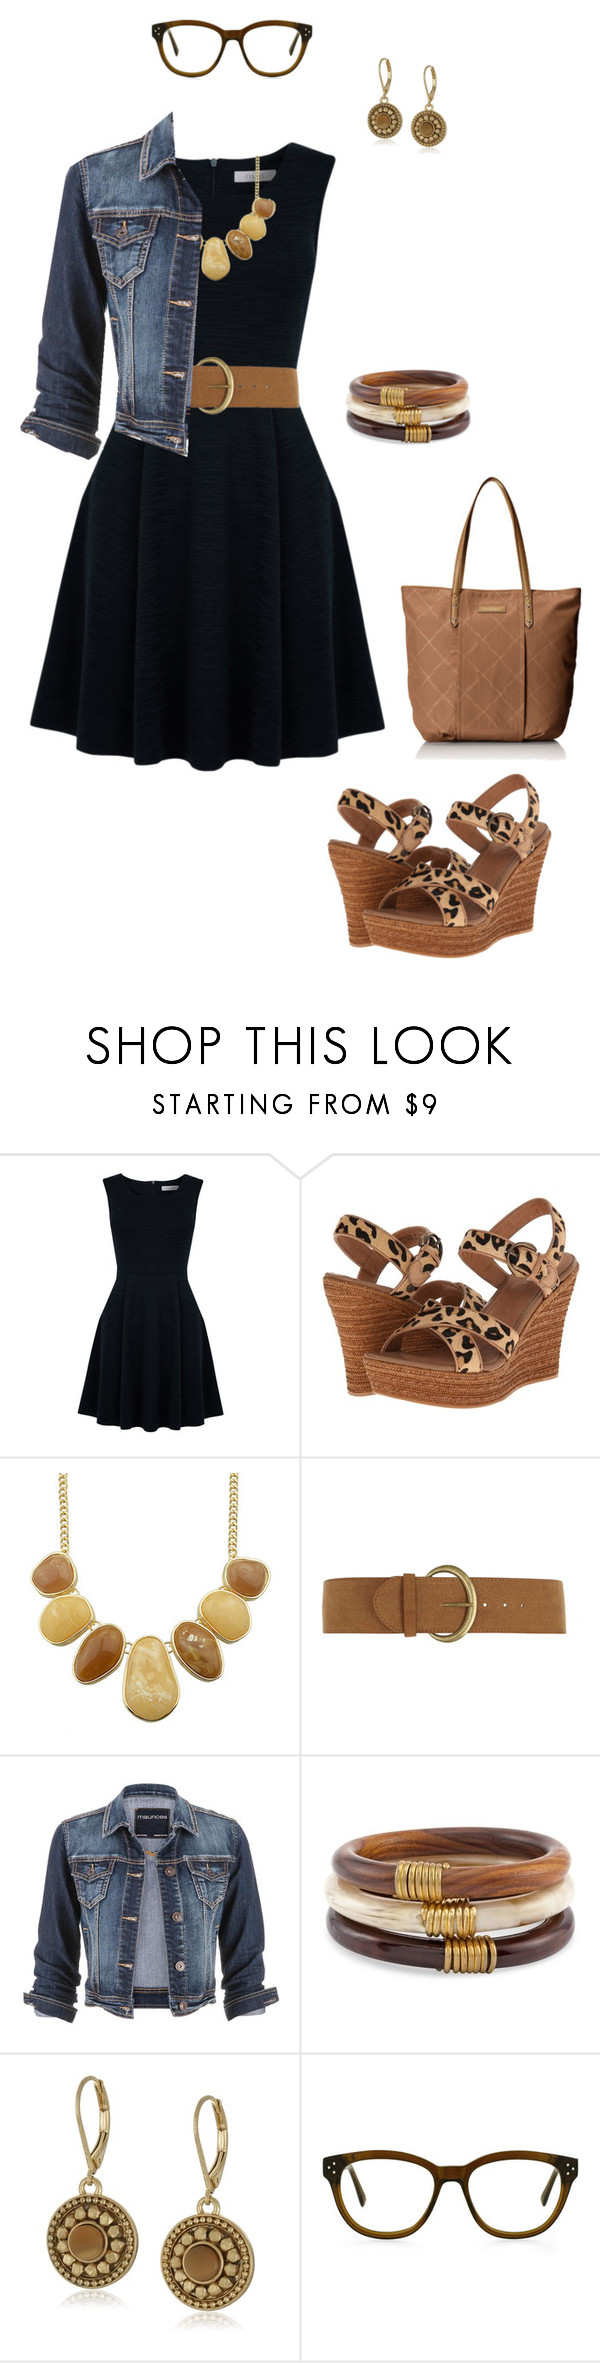 """Comfortable & Casual"" by angie-ryherd-brown on Polyvore featuring Oasis, UGG Australia, Dorothy Perkins, maurices, Chico's, Vince Camuto, Muse and Vera Bradley"